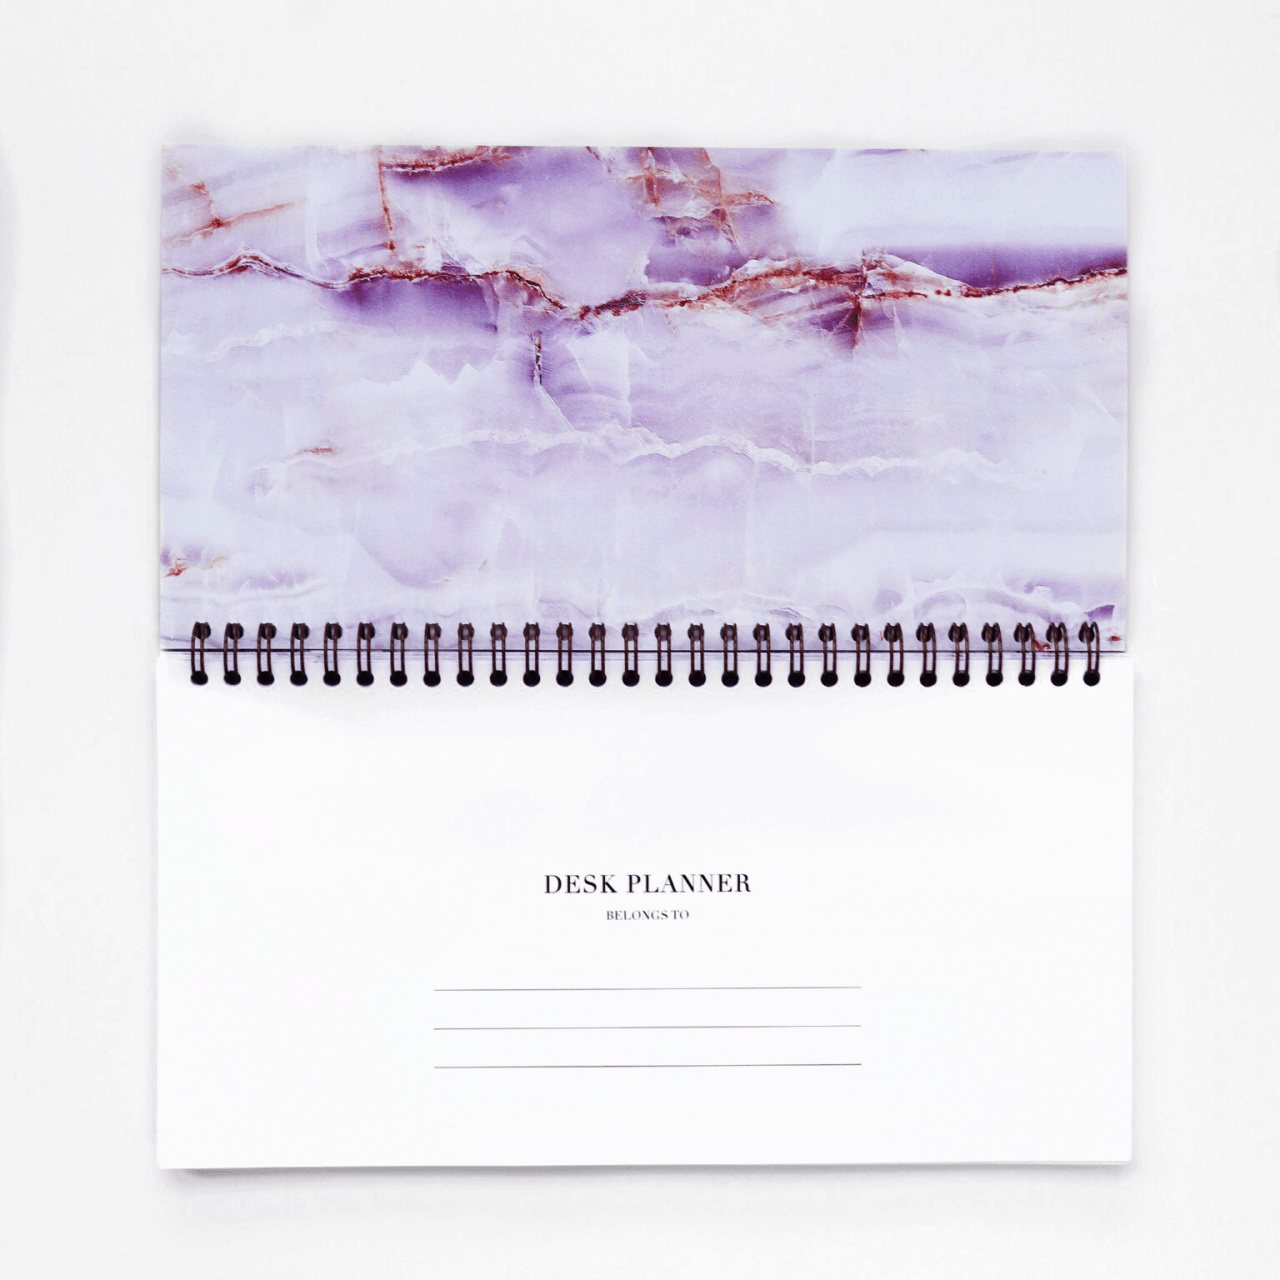 Student Desk Planner in Luxurious Amethyst